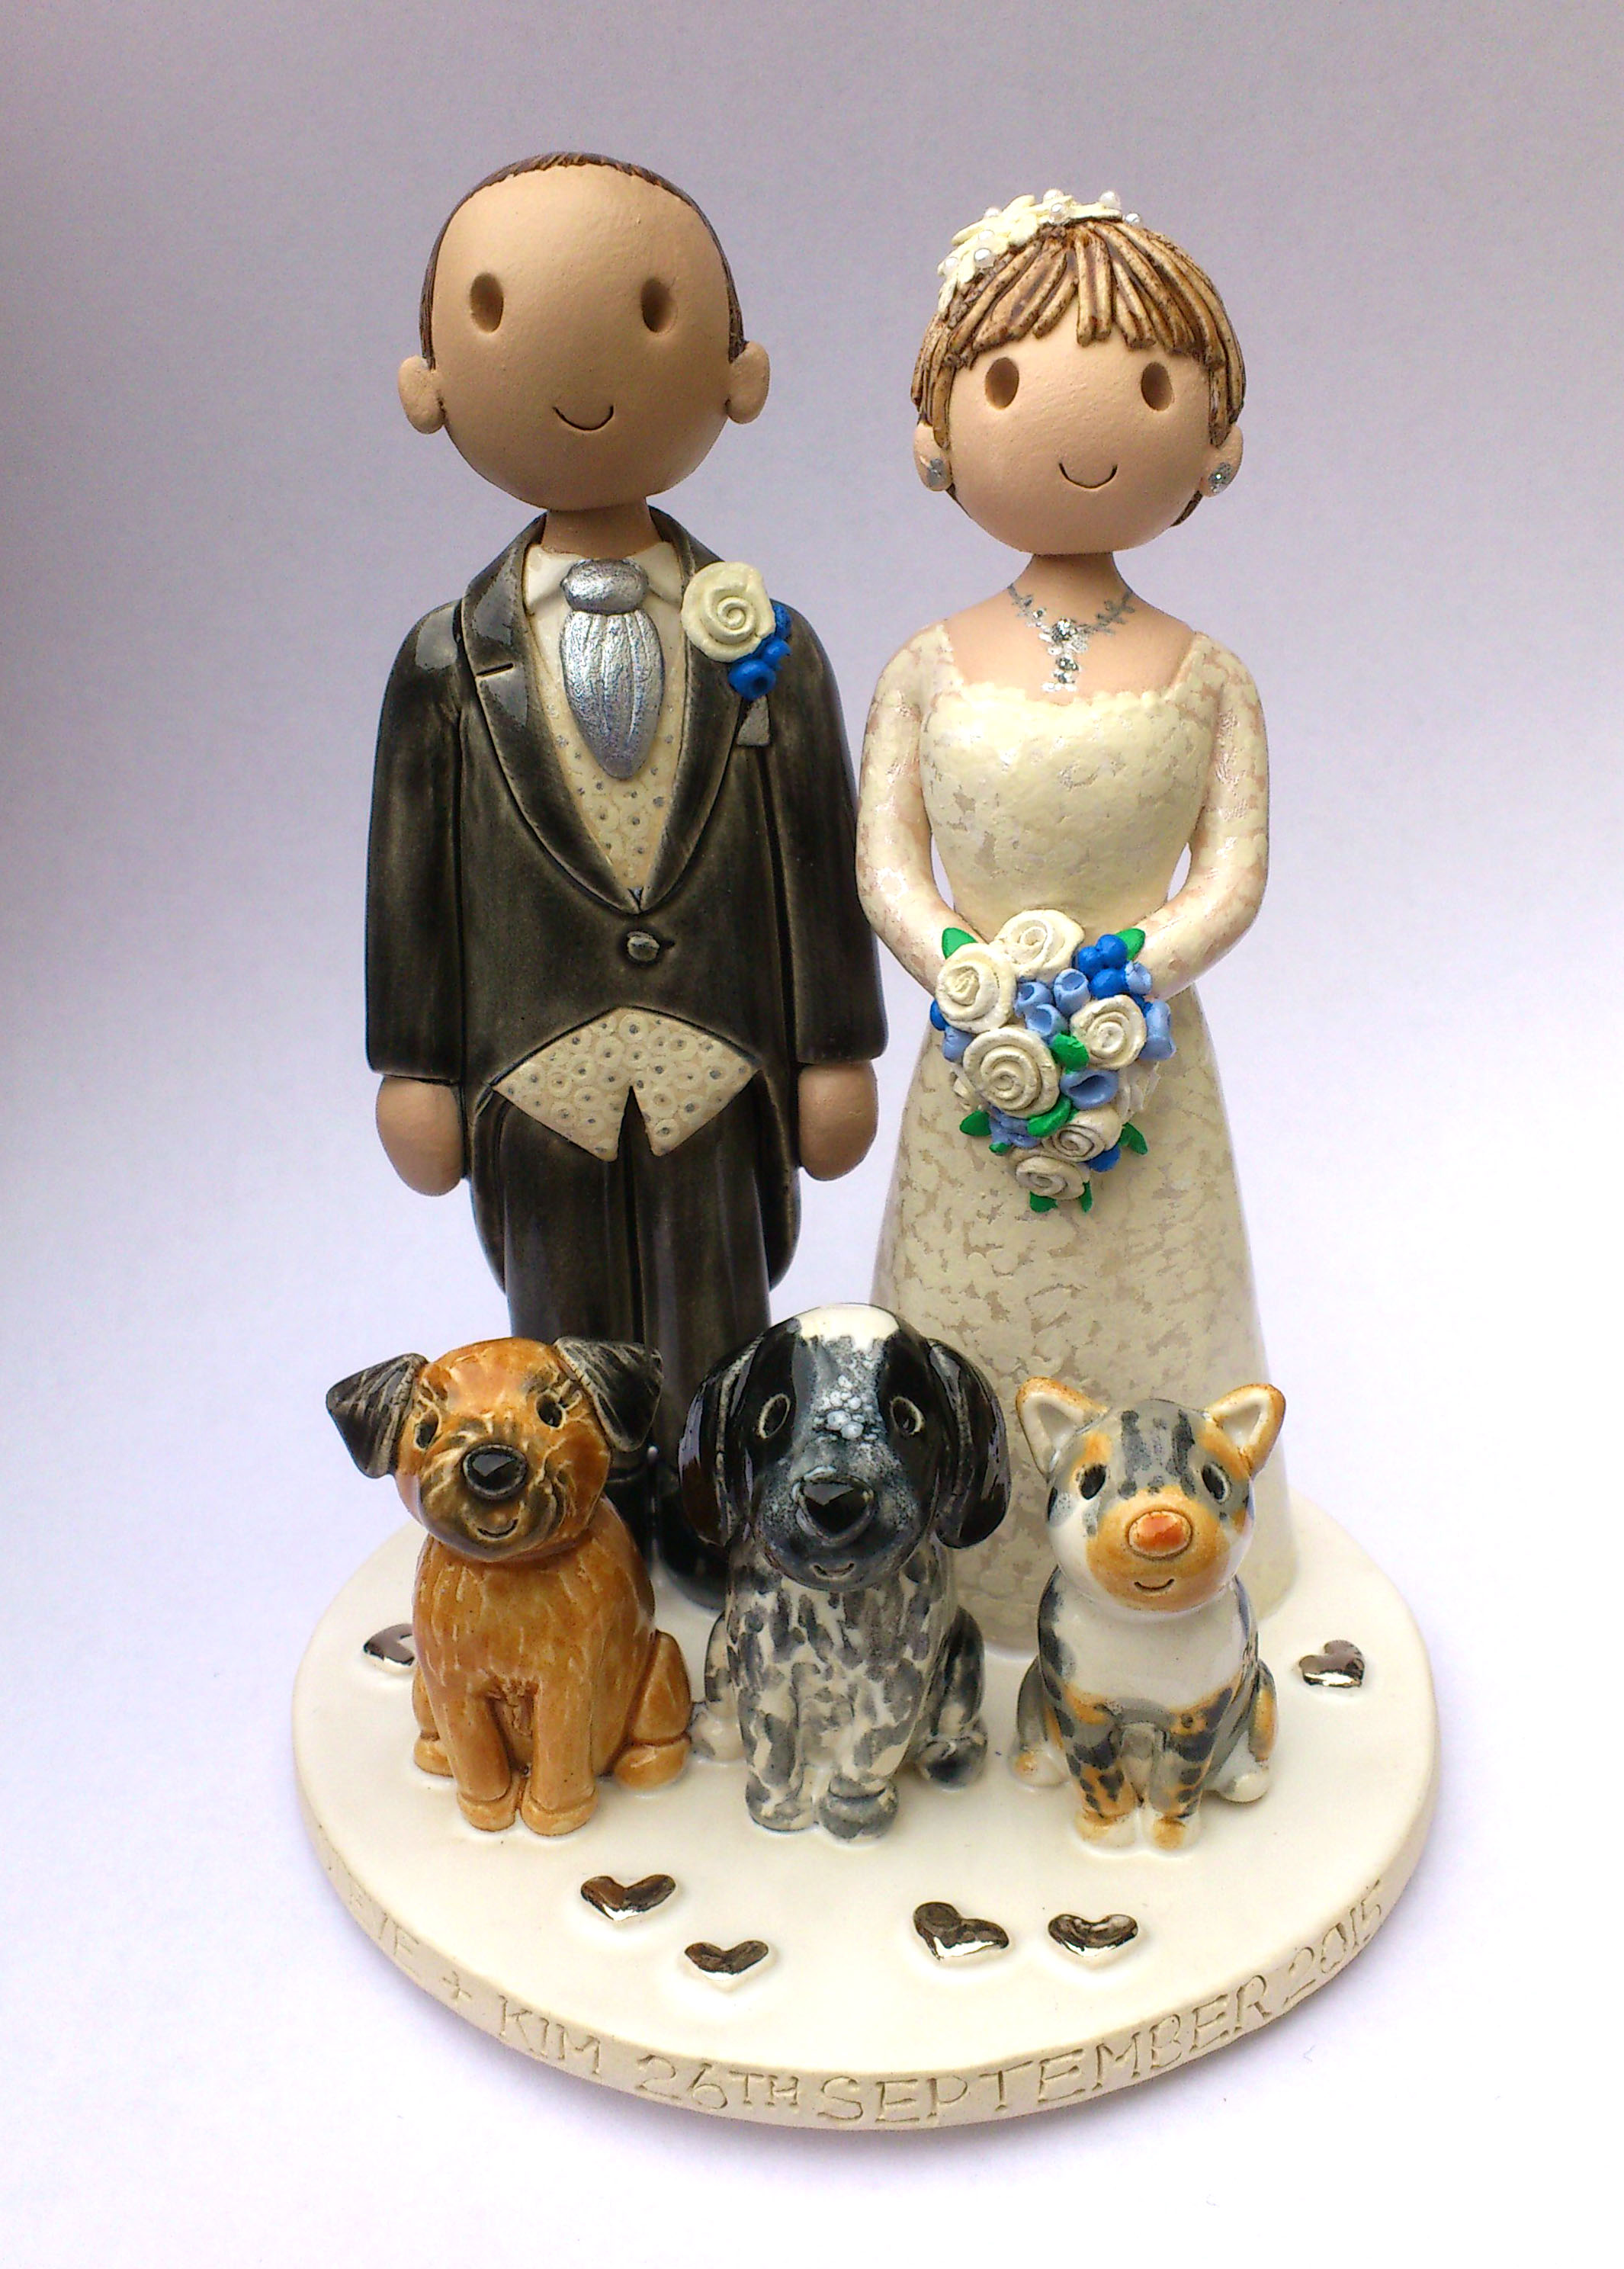 Wedding Cake Decorations Uk Only : Wedding Cake Toppers Gallery. Hand Made, Personalised Cake ...